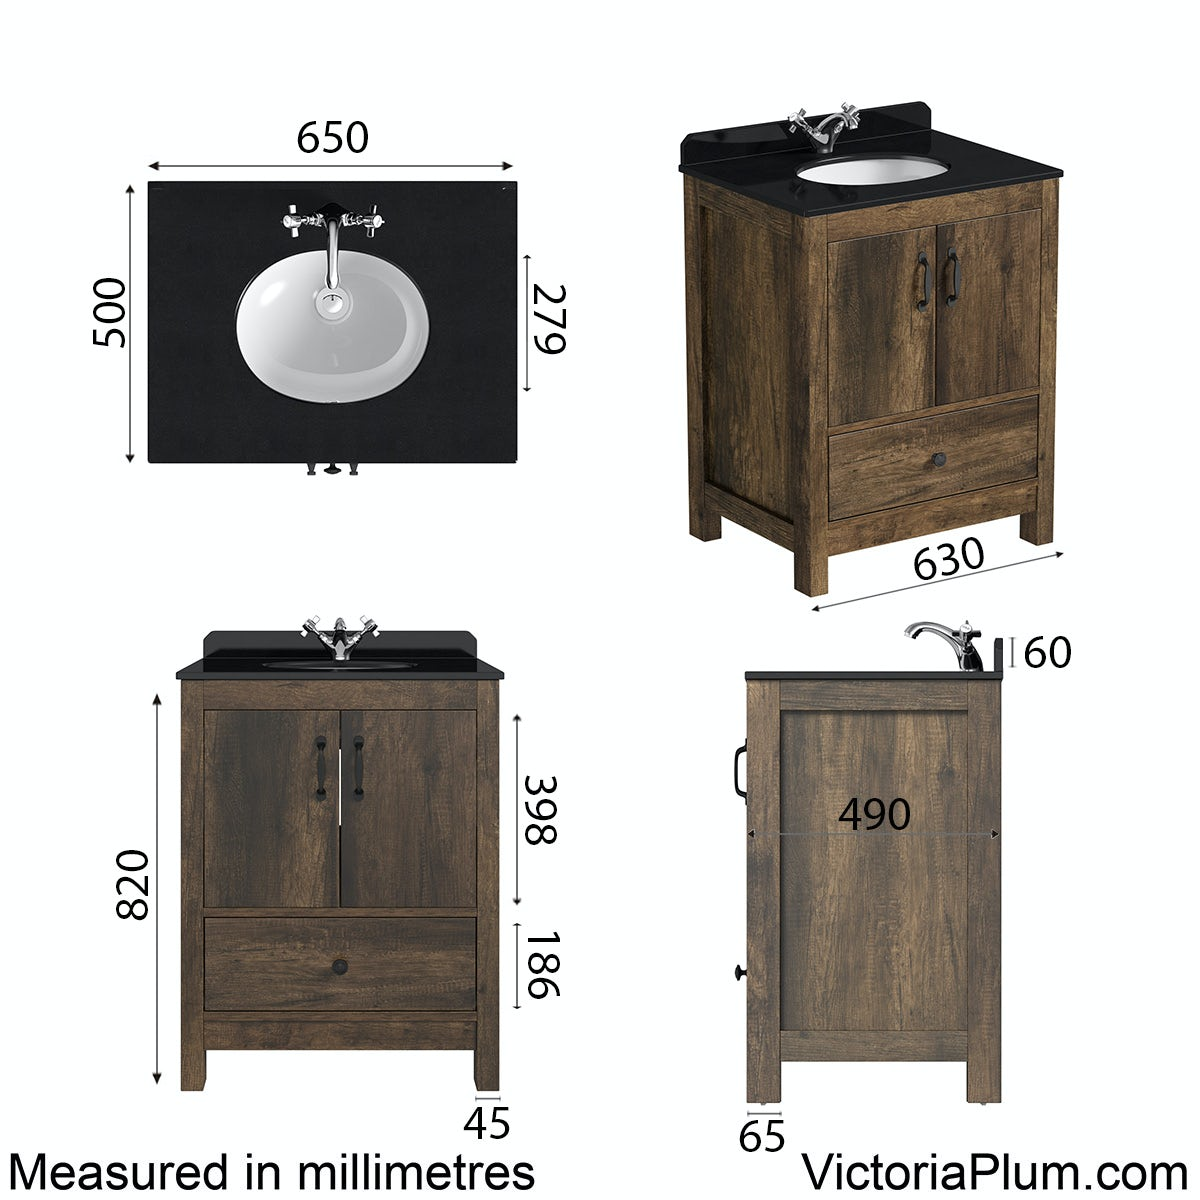 Dimensions for The Bath Co. Dalston vanity unit and black marble basin 650mm